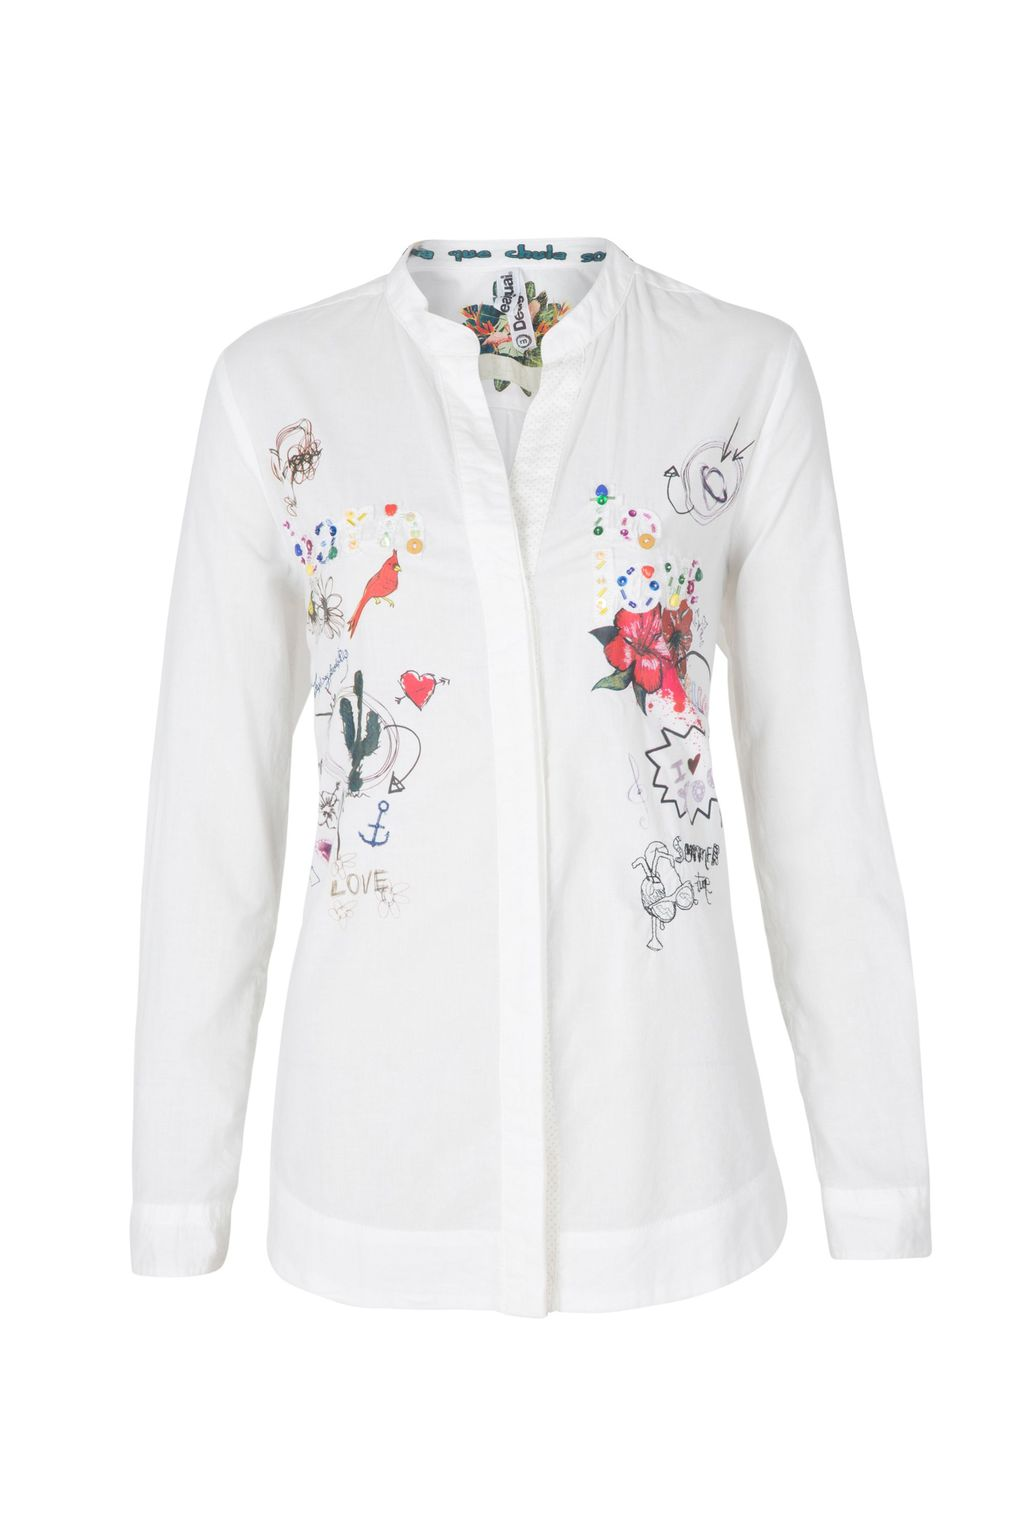 Hola Shirt, White - neckline: mandarin; style: shirt; predominant colour: white; occasions: casual, creative work; length: standard; fibres: cotton - 100%; fit: body skimming; sleeve length: long sleeve; sleeve style: standard; texture group: cotton feel fabrics; pattern type: fabric; pattern size: standard; pattern: florals; season: s/s 2016; wardrobe: highlight